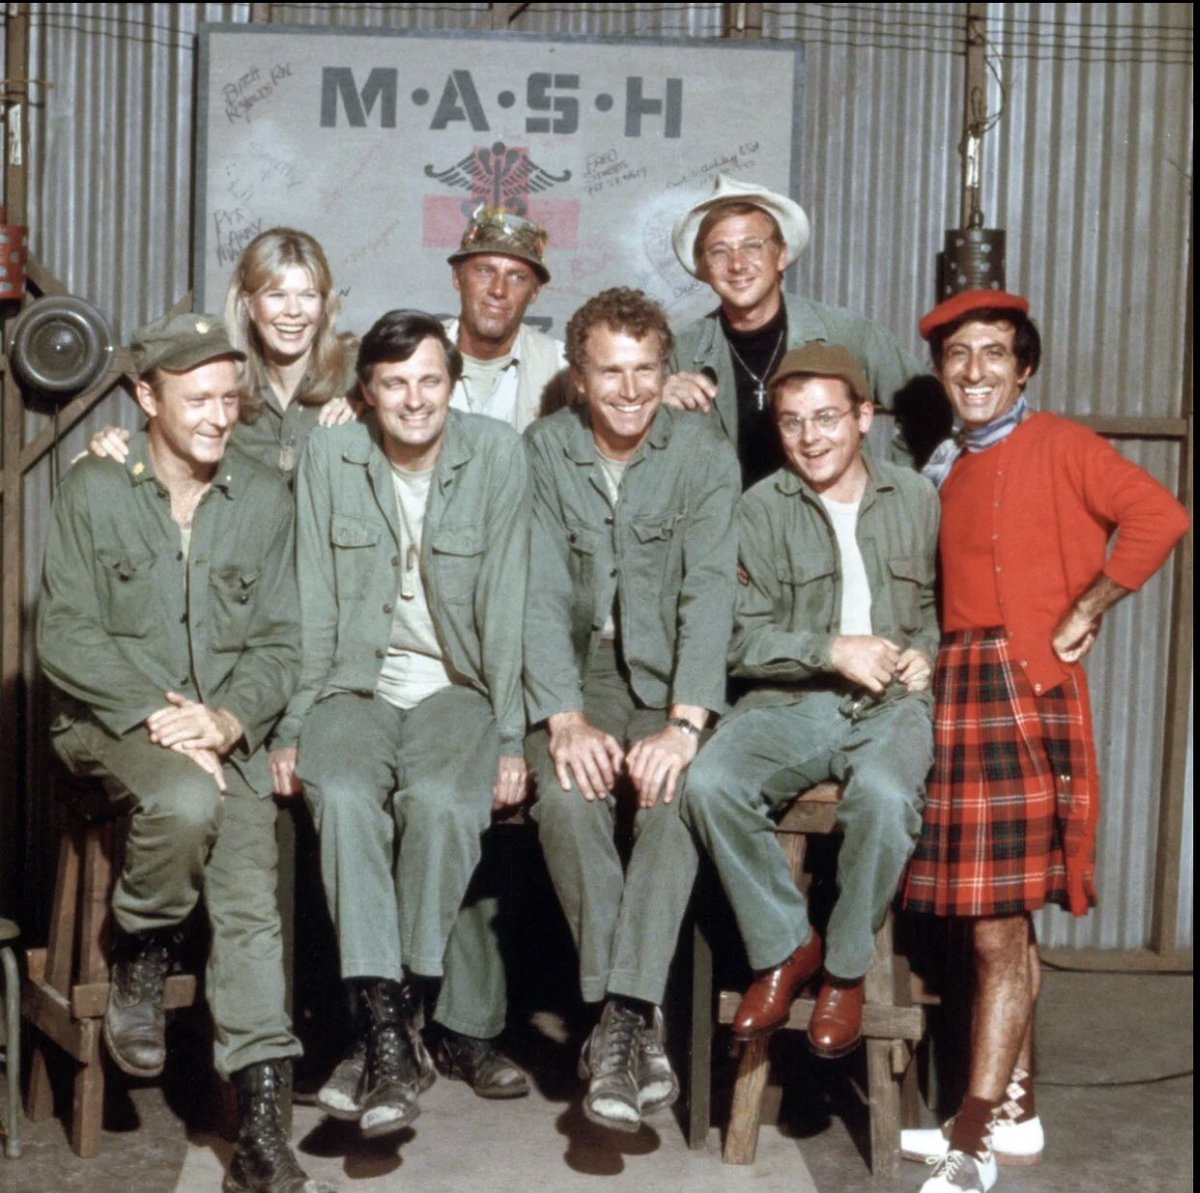 Never Be Afraid to Stand Out.    #MASH #Television #TV #KoreanWar #Friends #Family https://t.co/xOyXNCpsv5